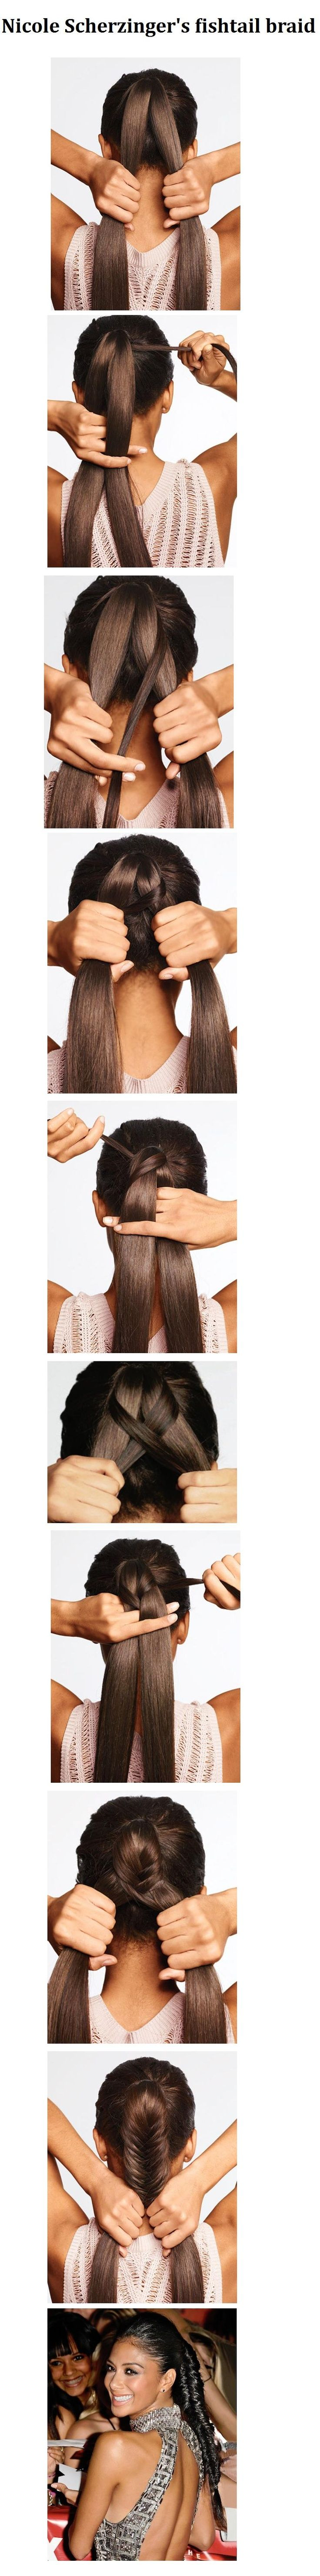 Nicole Scherzinger's fishtail braid #hair #beauty #hairstyles